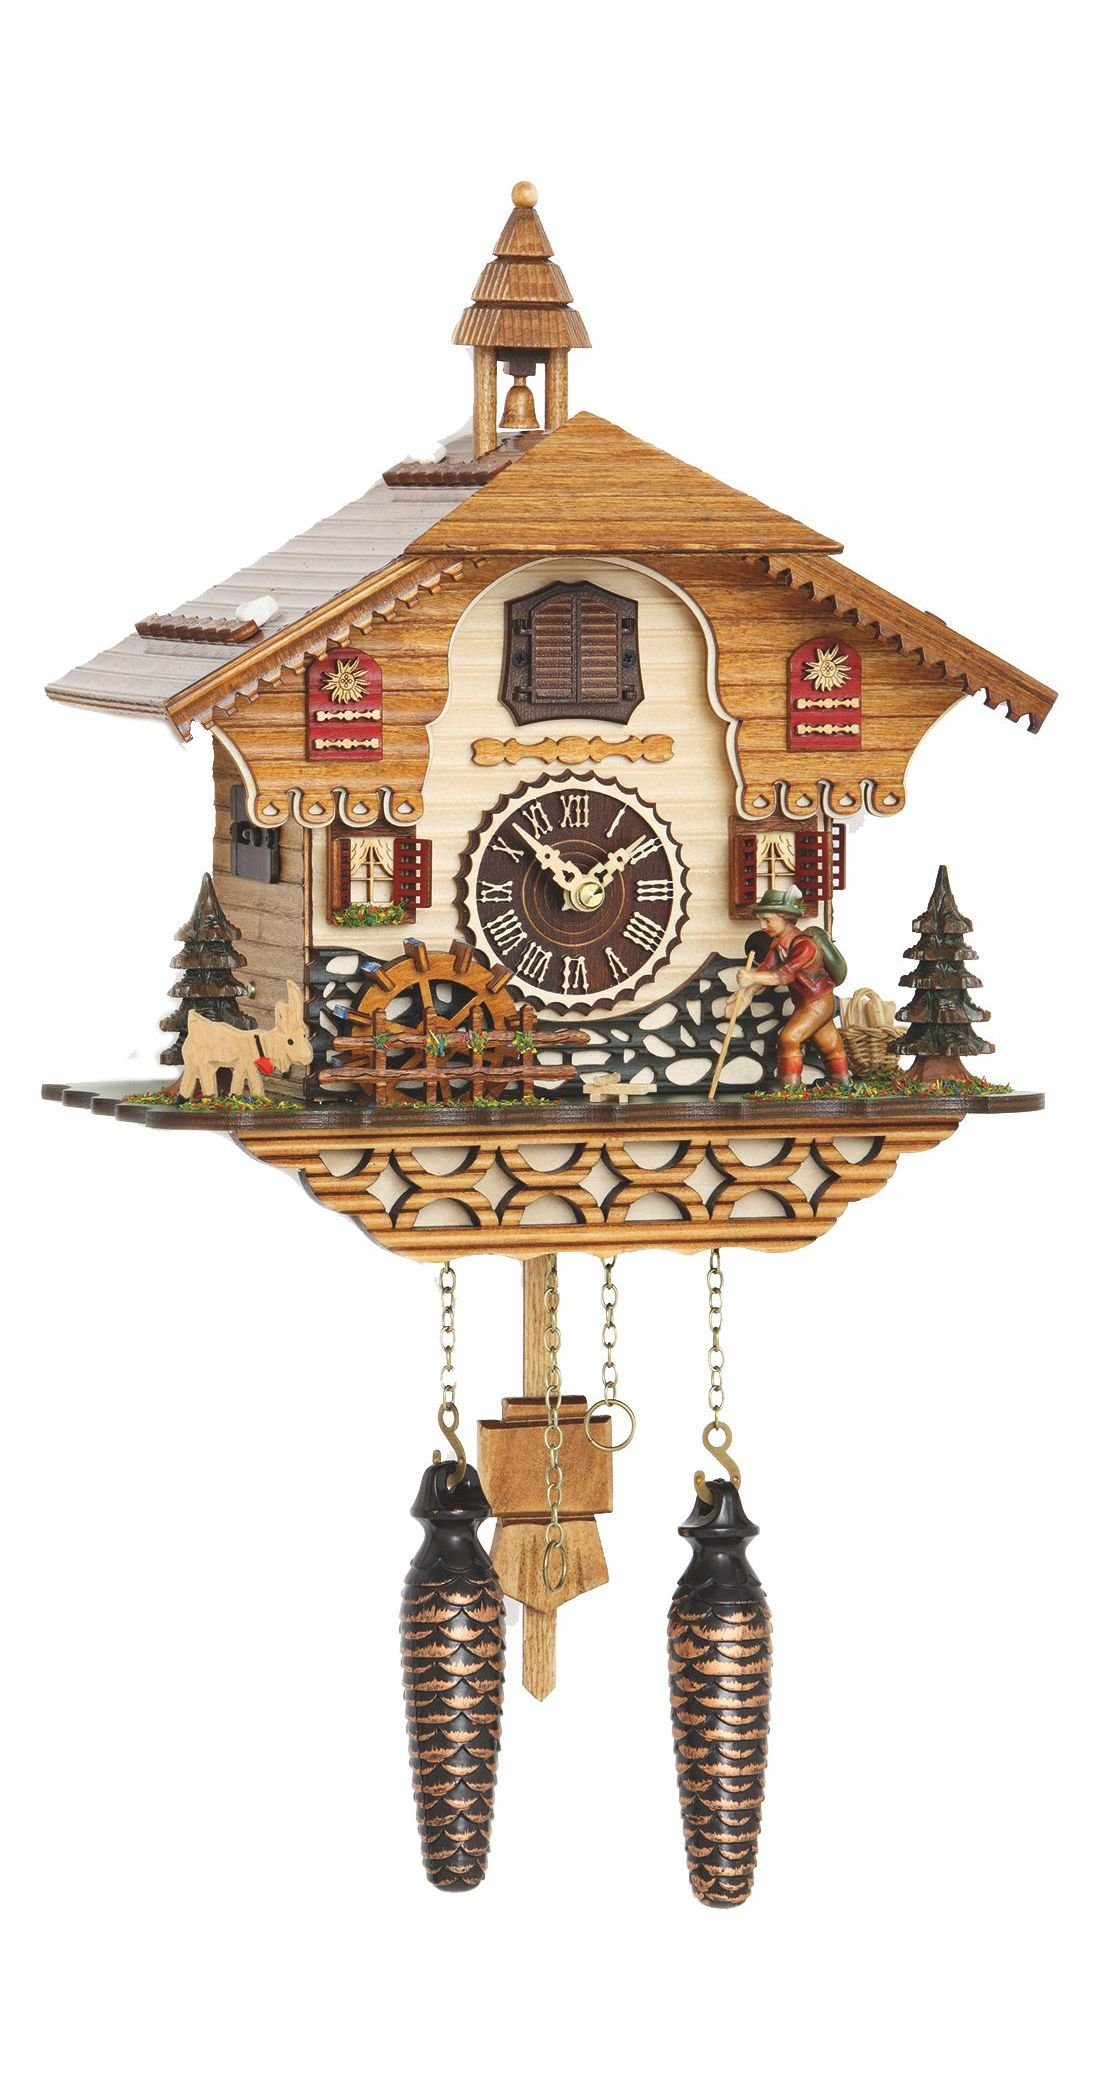 Quartz Cuckoo Clock Black forest house with music, moving wanderer and mill-wheel, incl. batteries TU 4216 QM by Trenkle Uhren